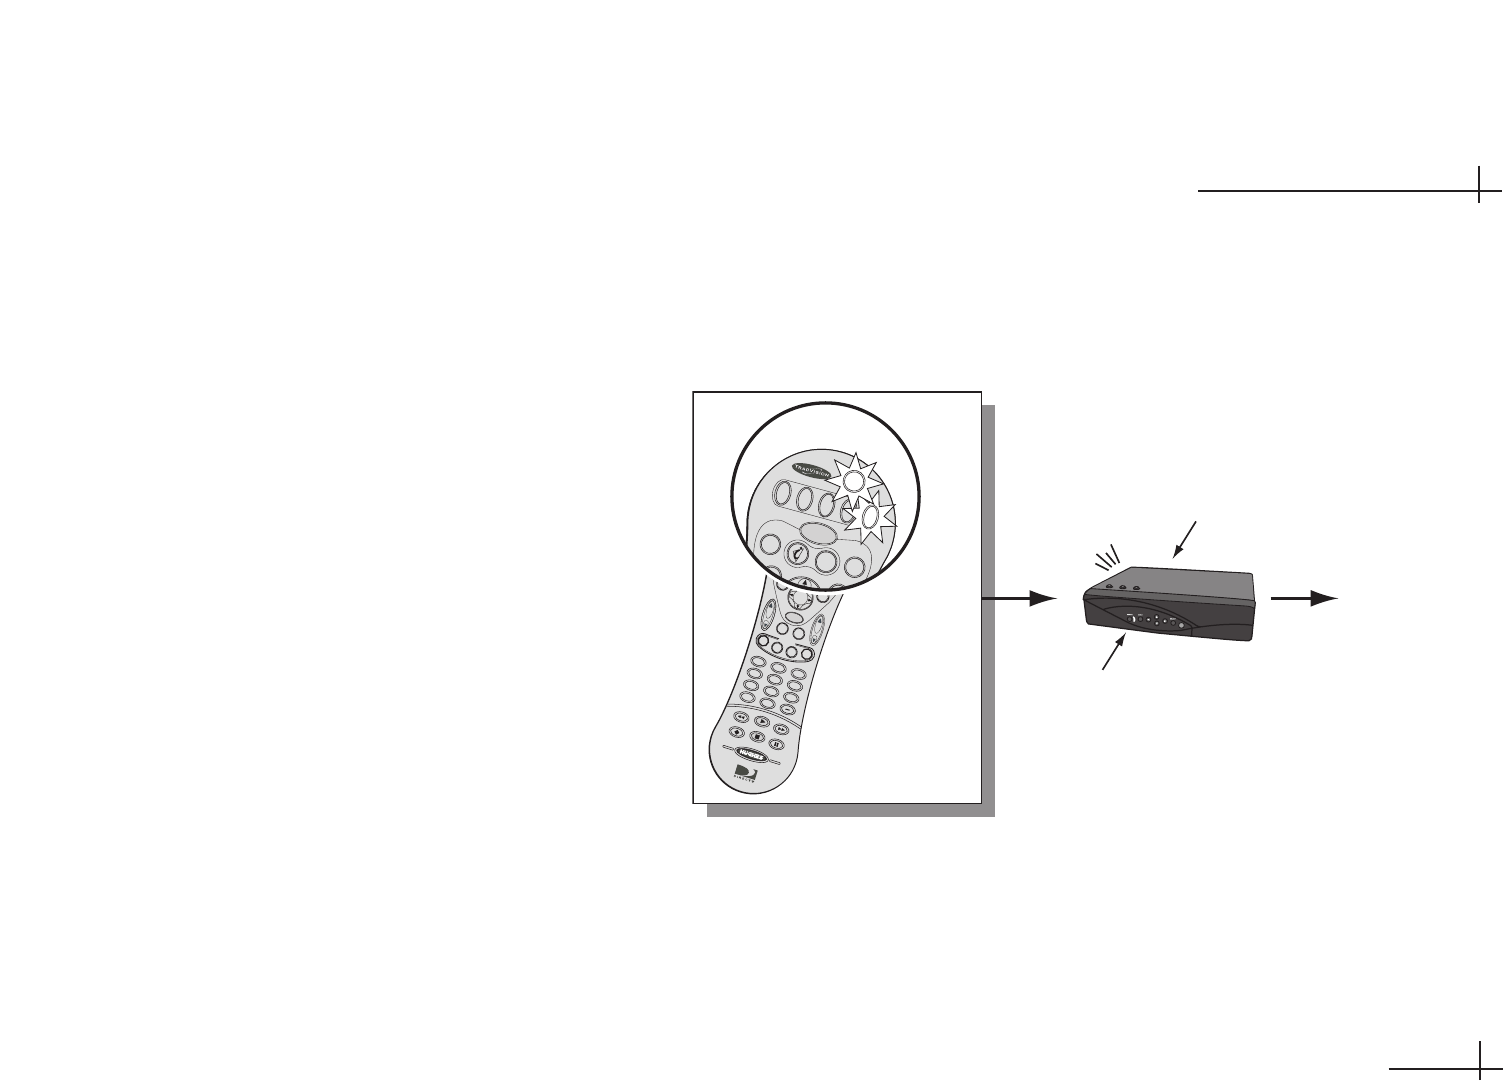 Page 22 of KVH Industries Satellite TV System antenna